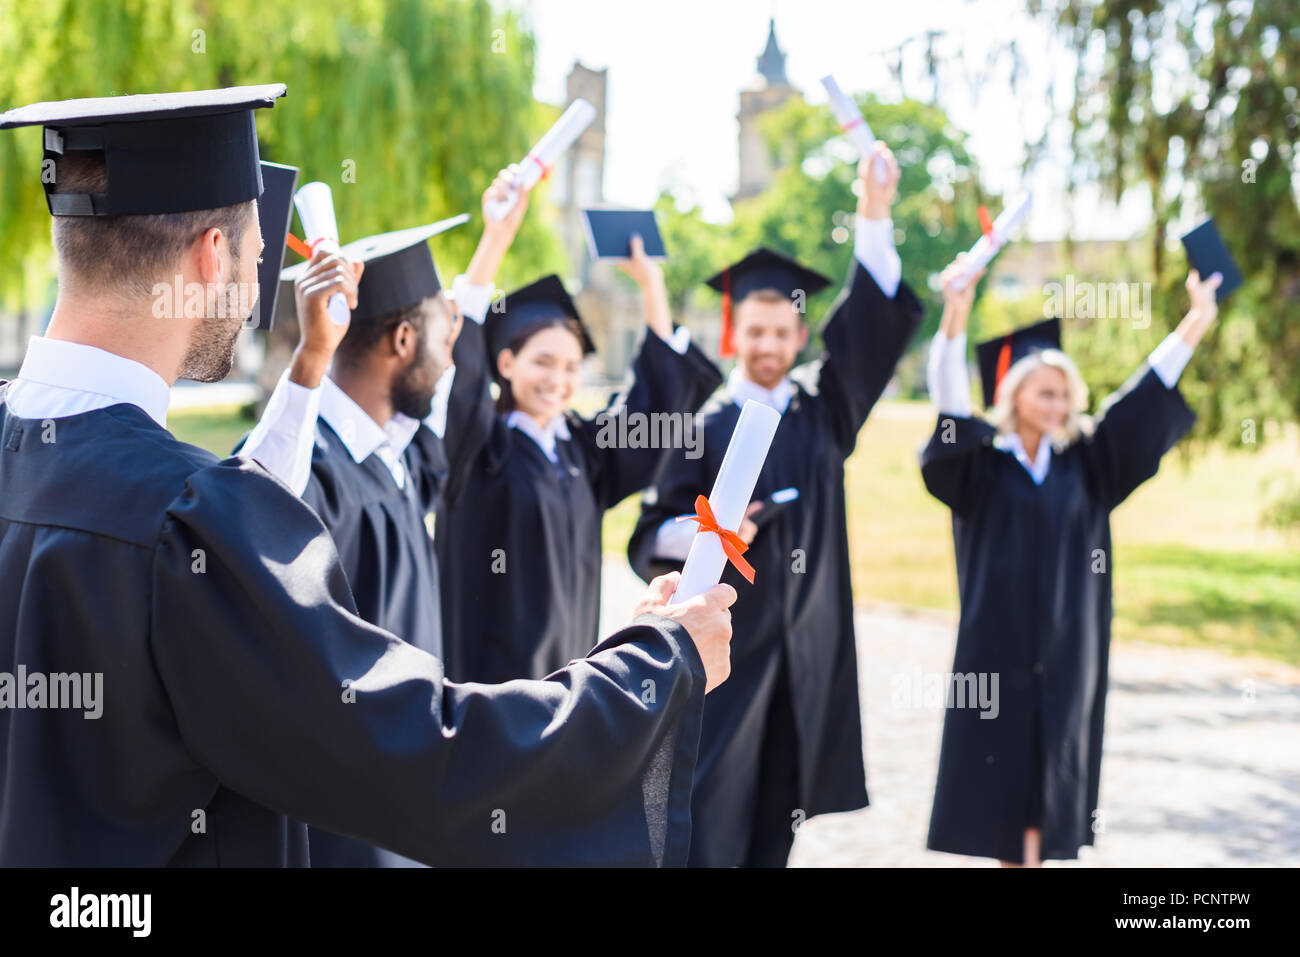 young happy students celebrating graduation together on college square - Stock Image